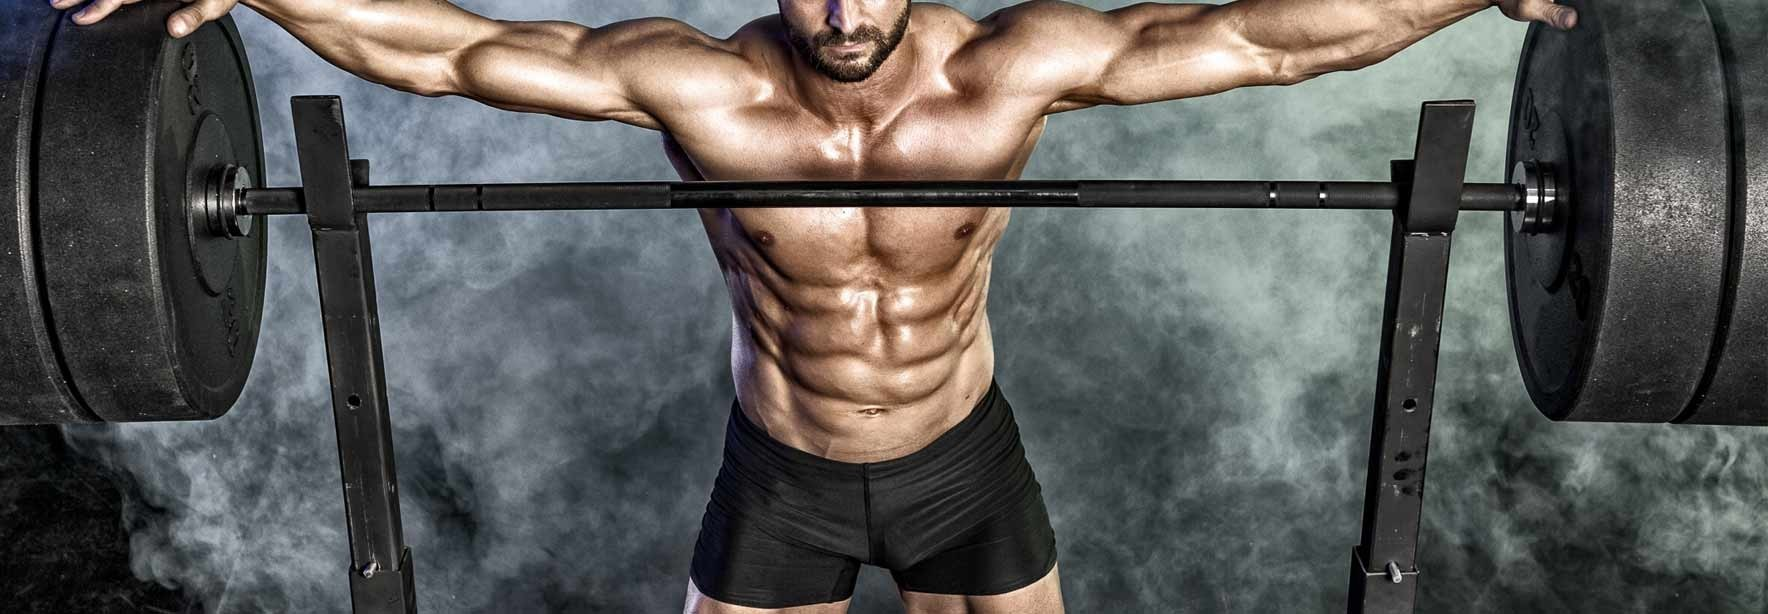 Top 10 Bulking Supplements for 2017